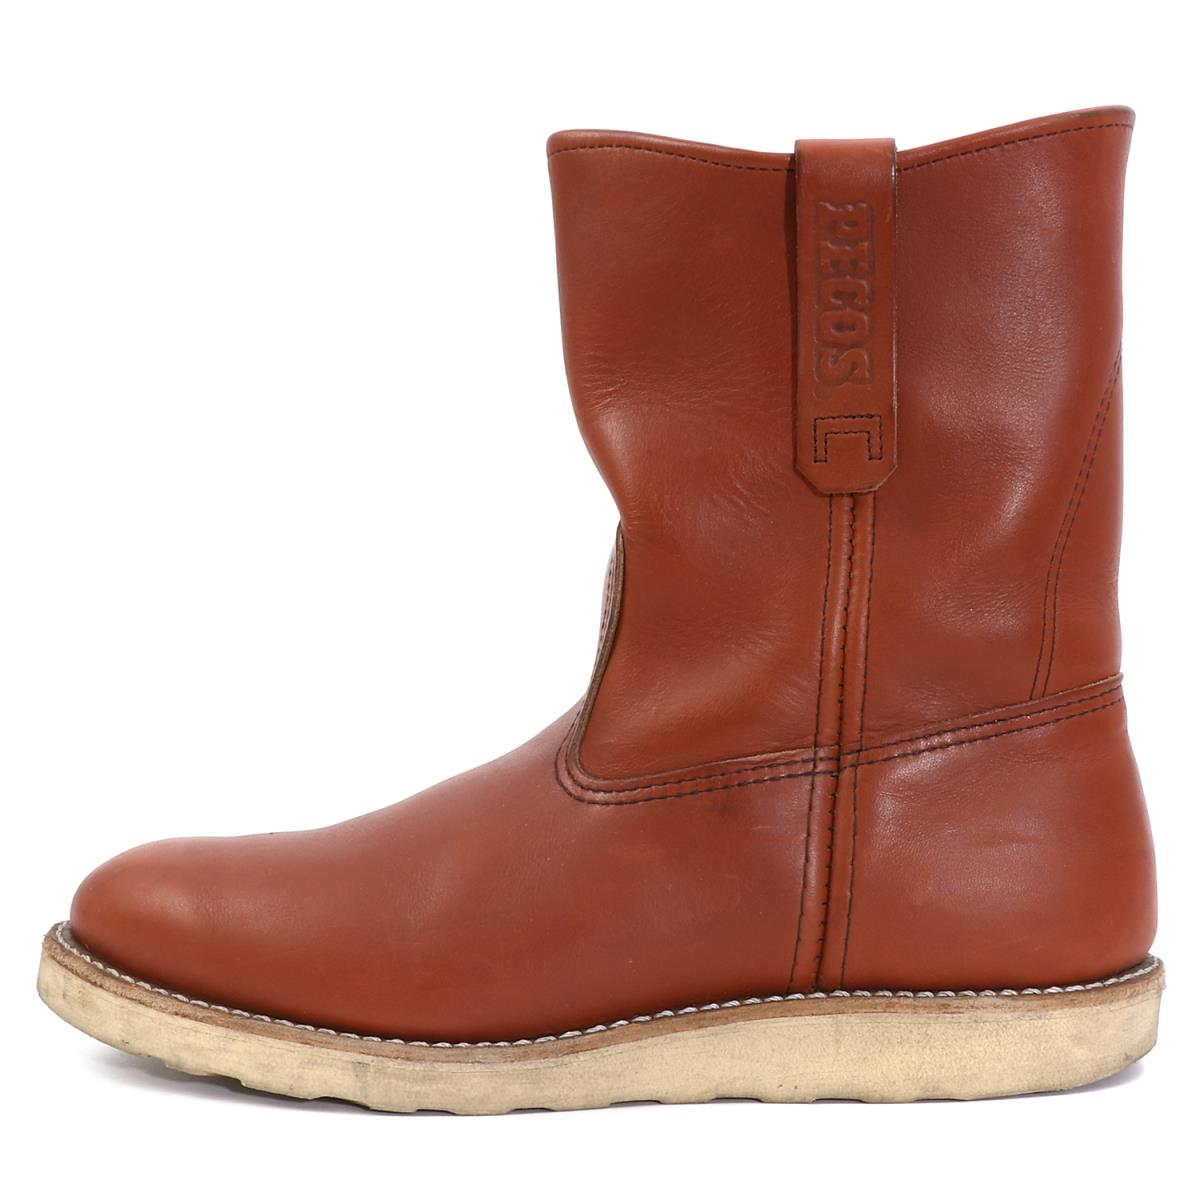 1944834e350 Red Wing (red wing) 11' 8866 leather pekoe boots (Pecos Boots) オロラセット  (reddish brown) US9 E(27cm)